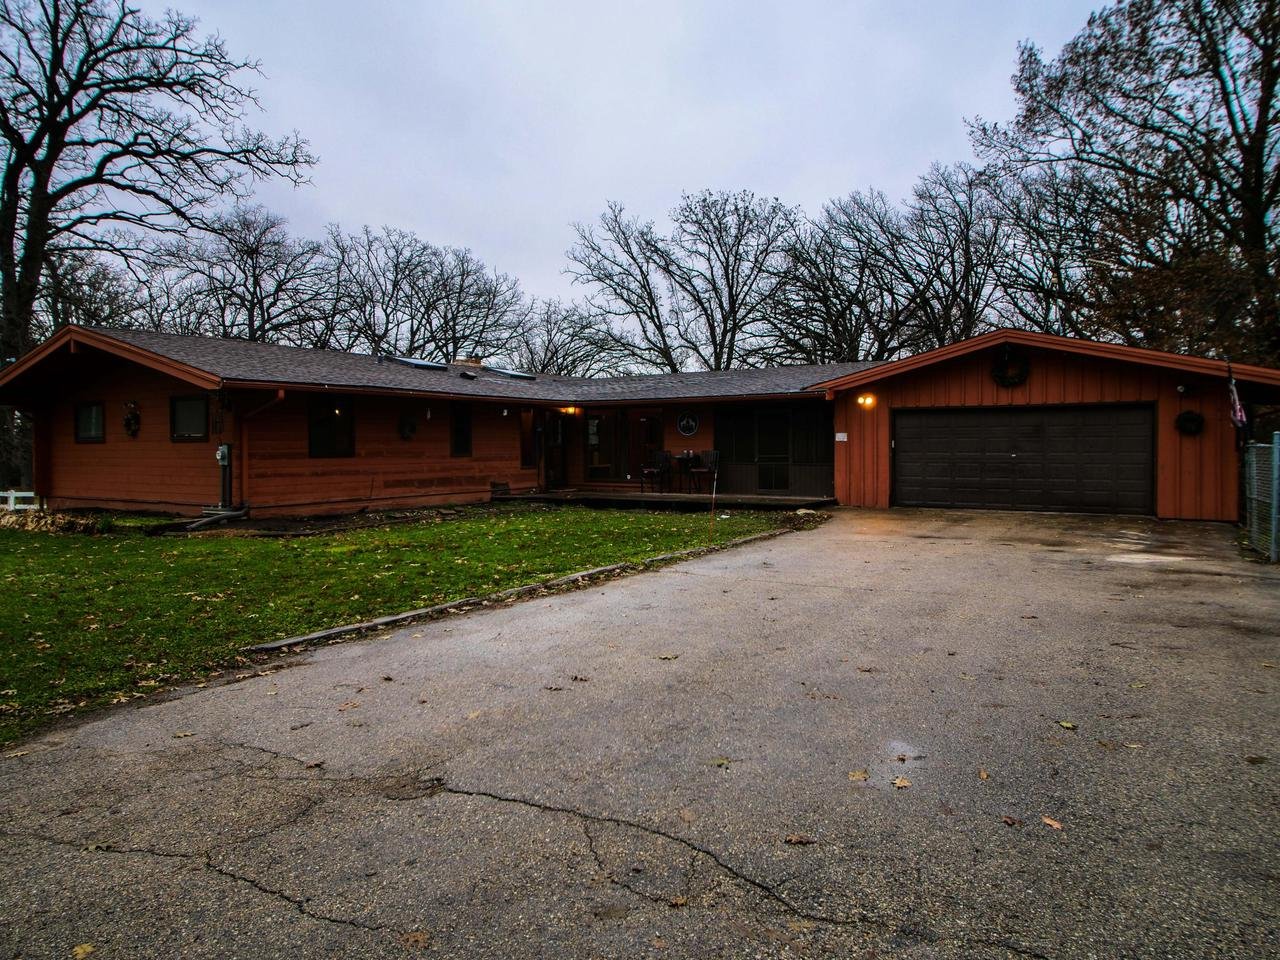 Come look at this fantastic 19.5 acre horse farm! Property comes with a horse barn that is set up to house up to 8 horses. Property also has small fishing pond behind house. Storage shed on property for all your extra toys. House is a spacious 1700 square foot floor plan with 3 bed room, 3 bathroom ranch home that is open concept. Walk out Basement with separate work room ready for your finishing touches. Home needs TLC but this property is worth the sweat! Home warranty included! Home is sold AS IS.